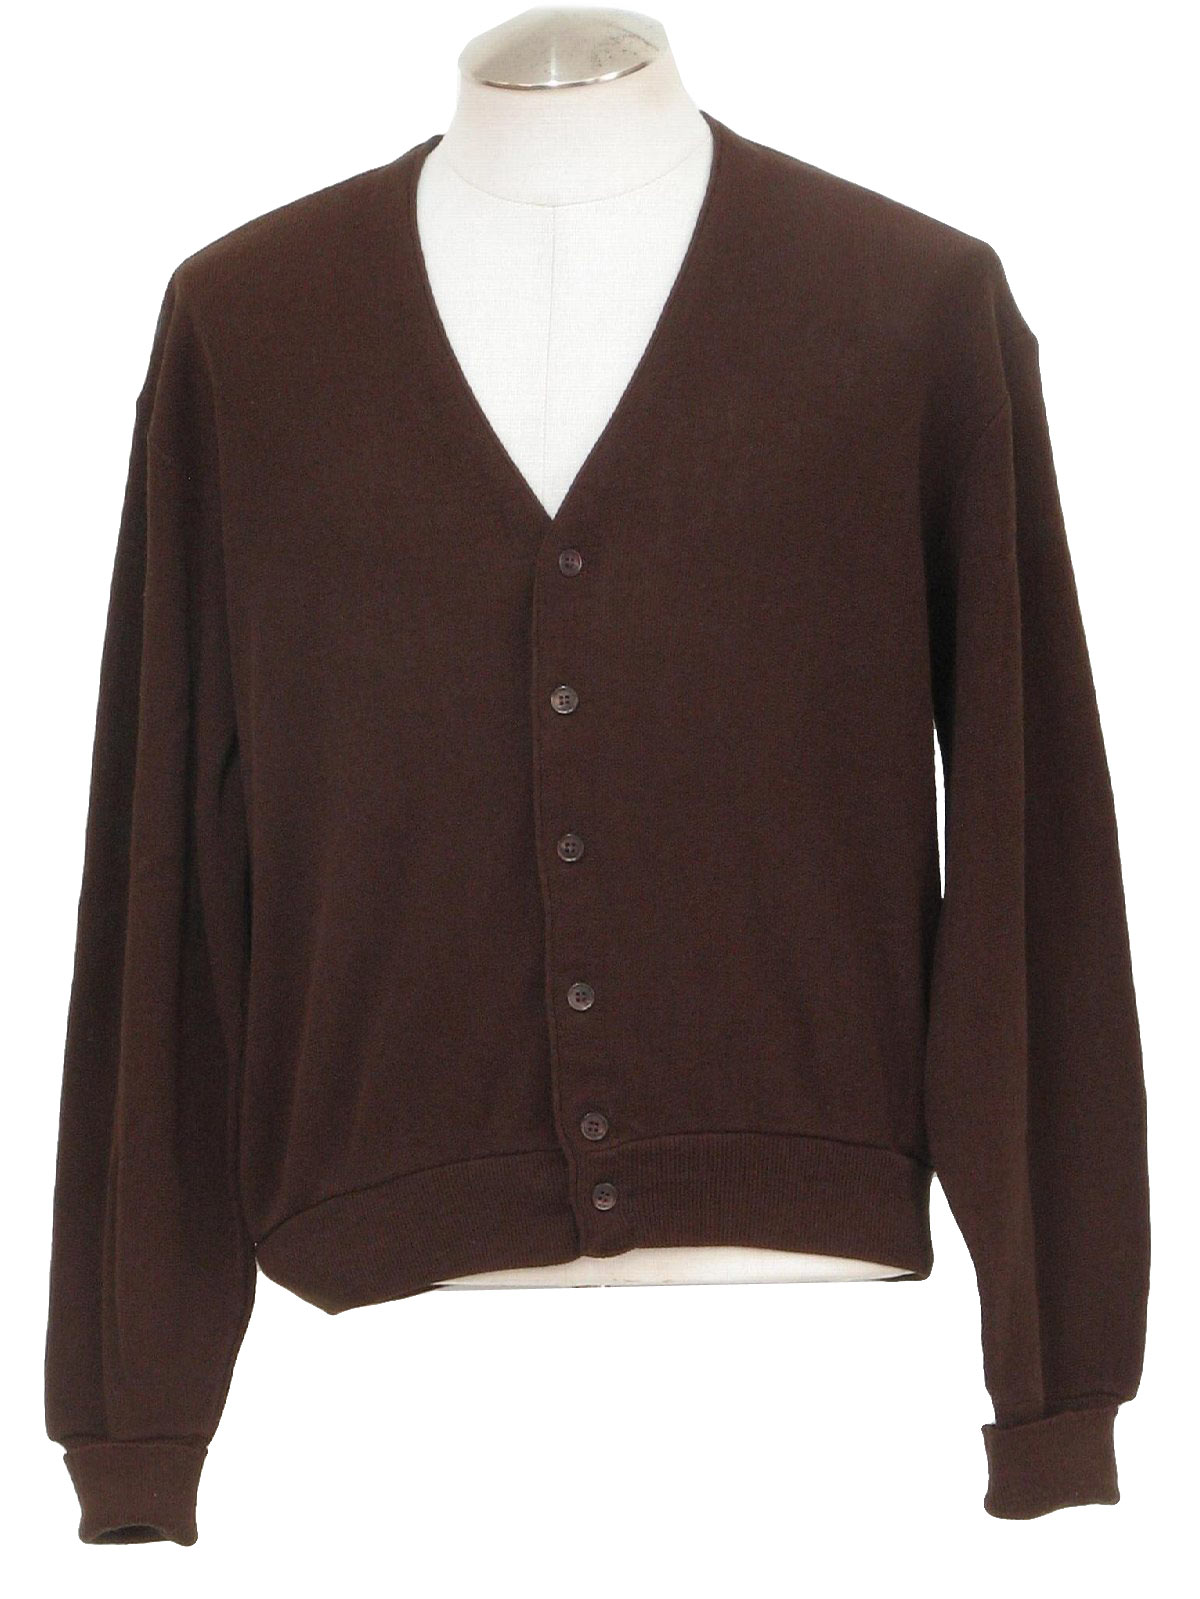 Womens Brown Cardigan 71